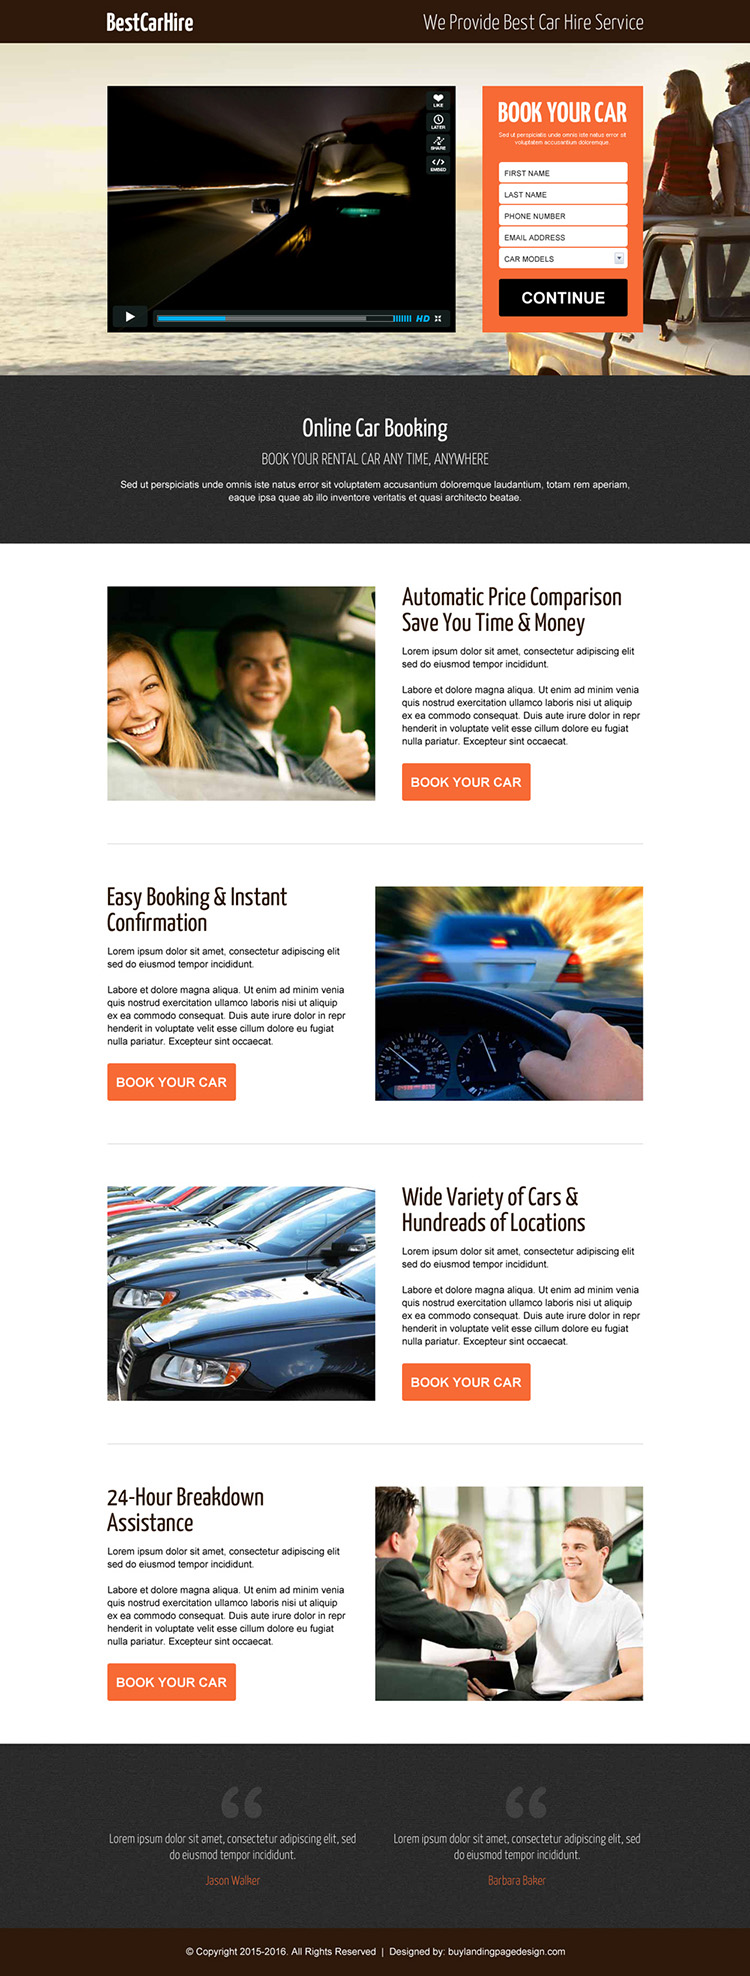 best car hire lead capture responsive video landing page design